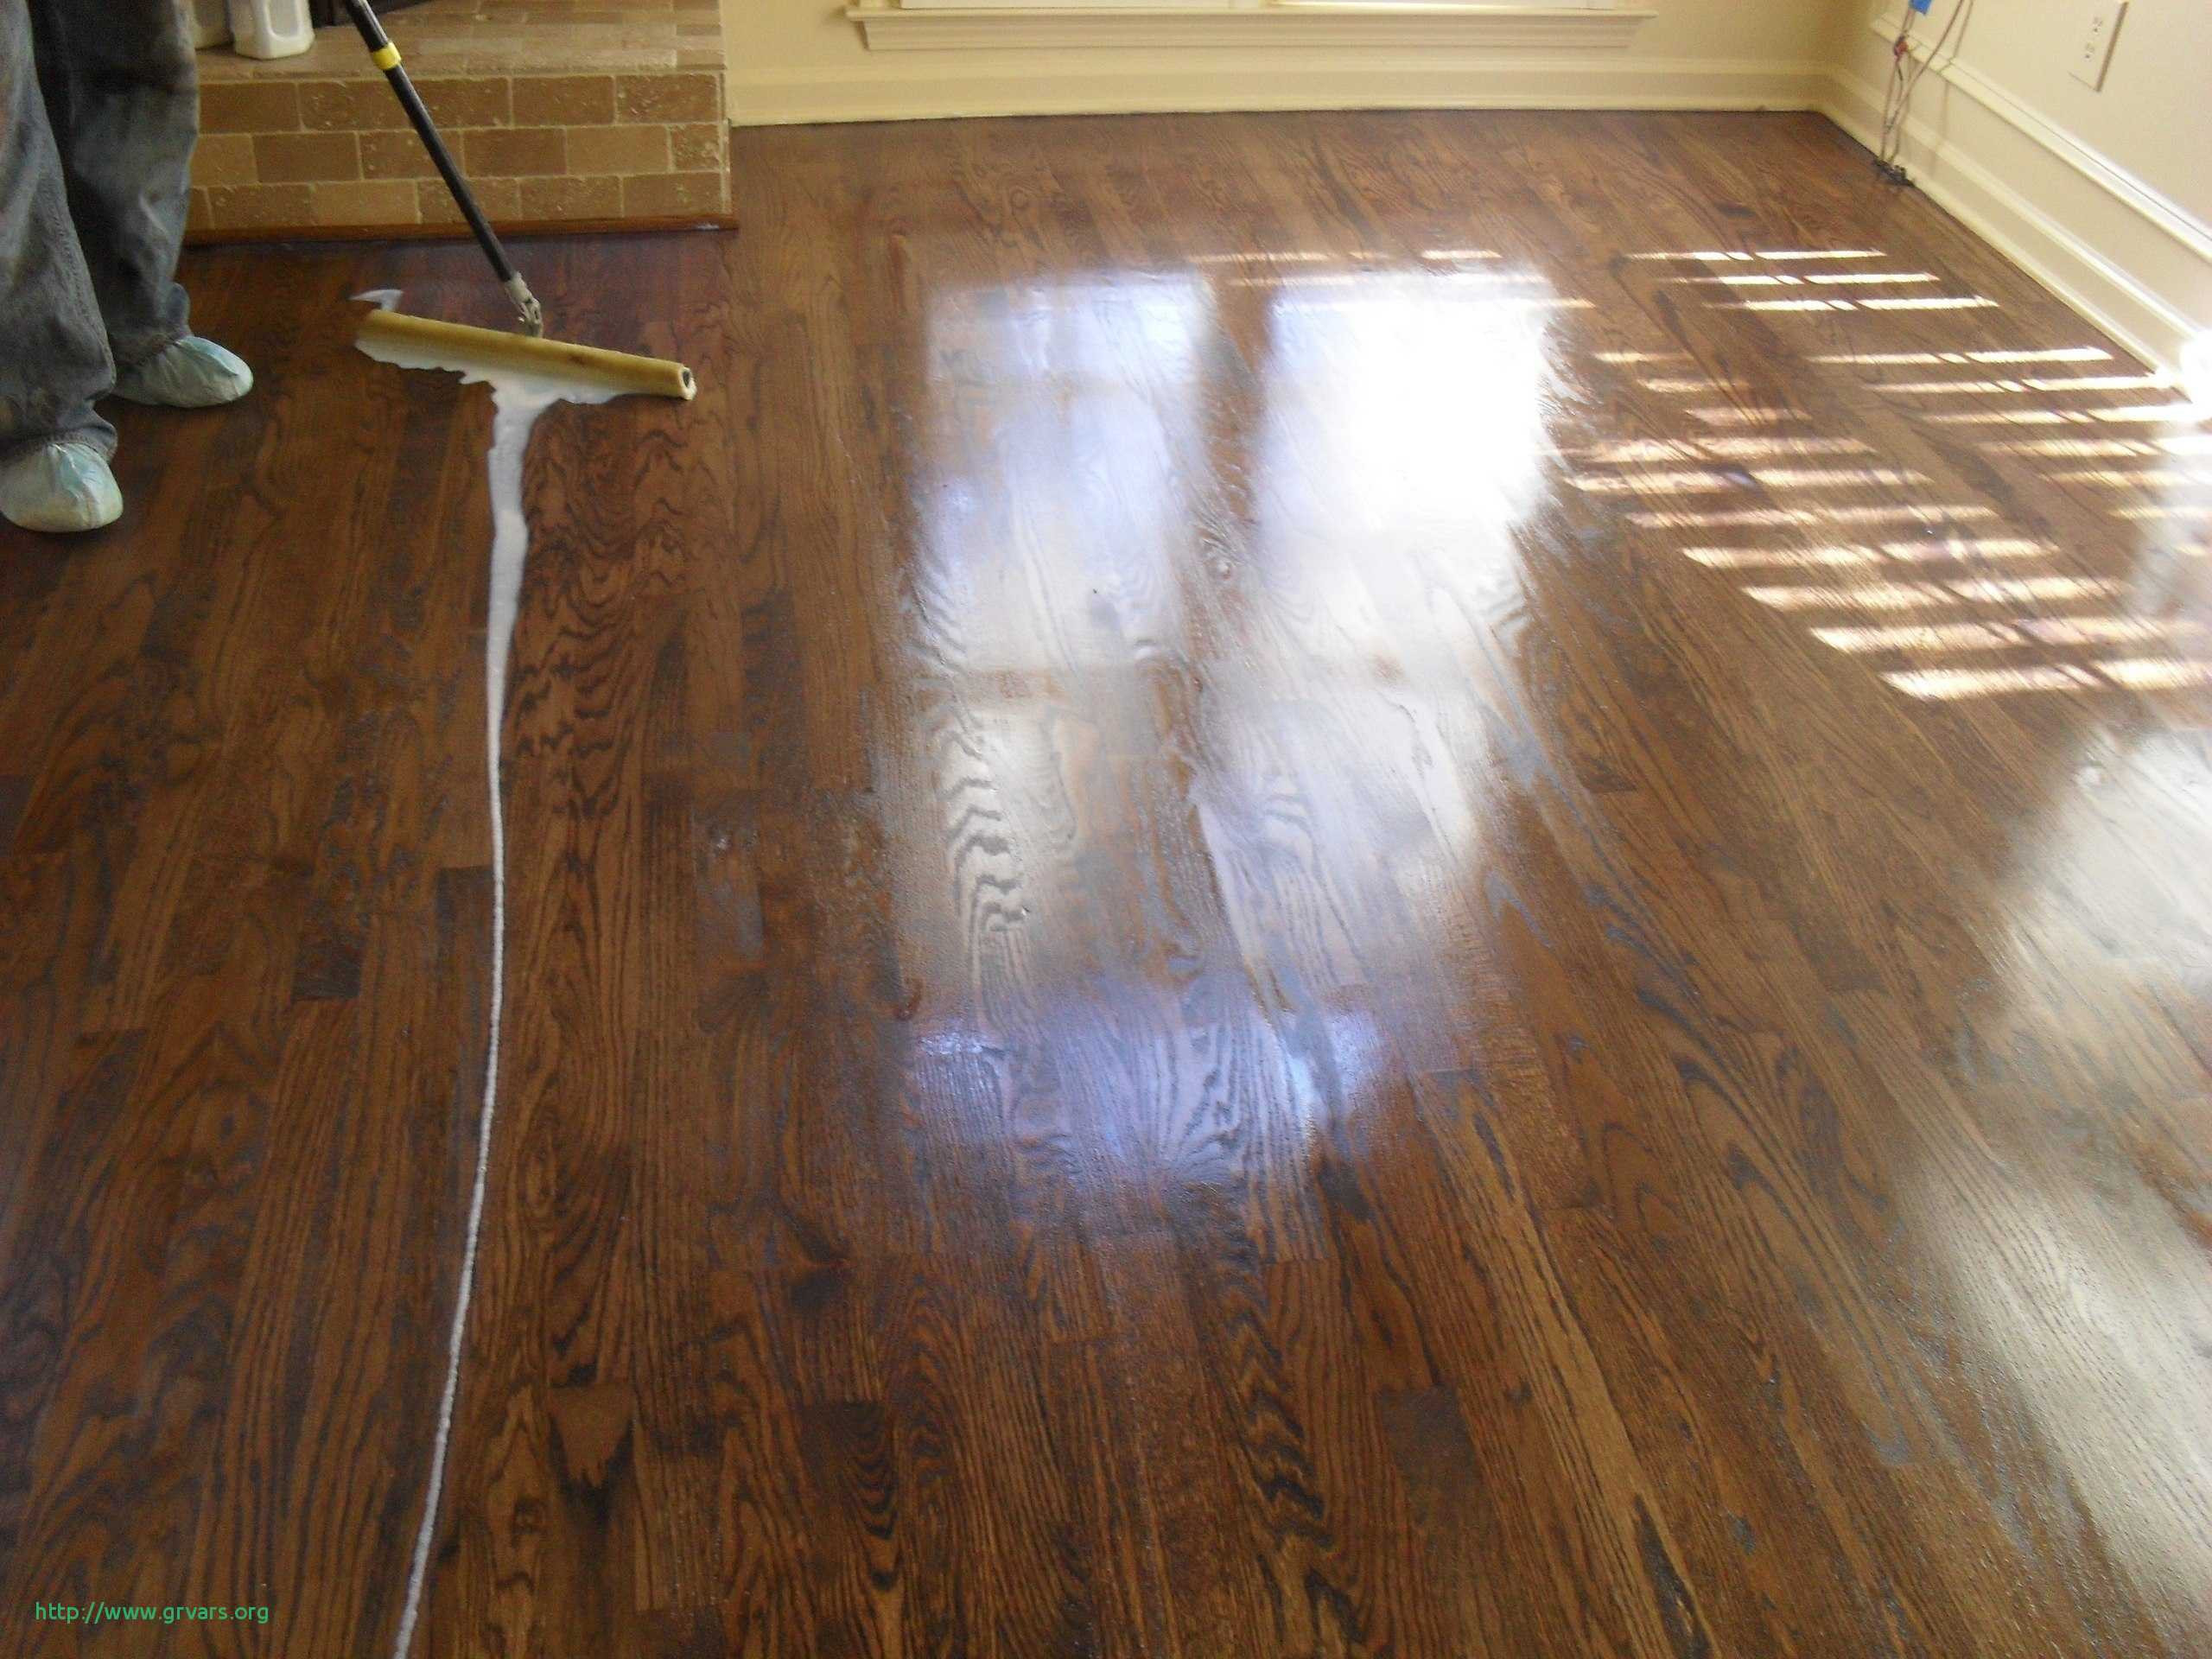 waxing hardwood floors yourself of image number 6563 from post restoring old hardwood floors will inside nouveau hardwood floors yourself ideas restoring old will inspirant redo without sanding podemosleganes lovely refinishingod pet